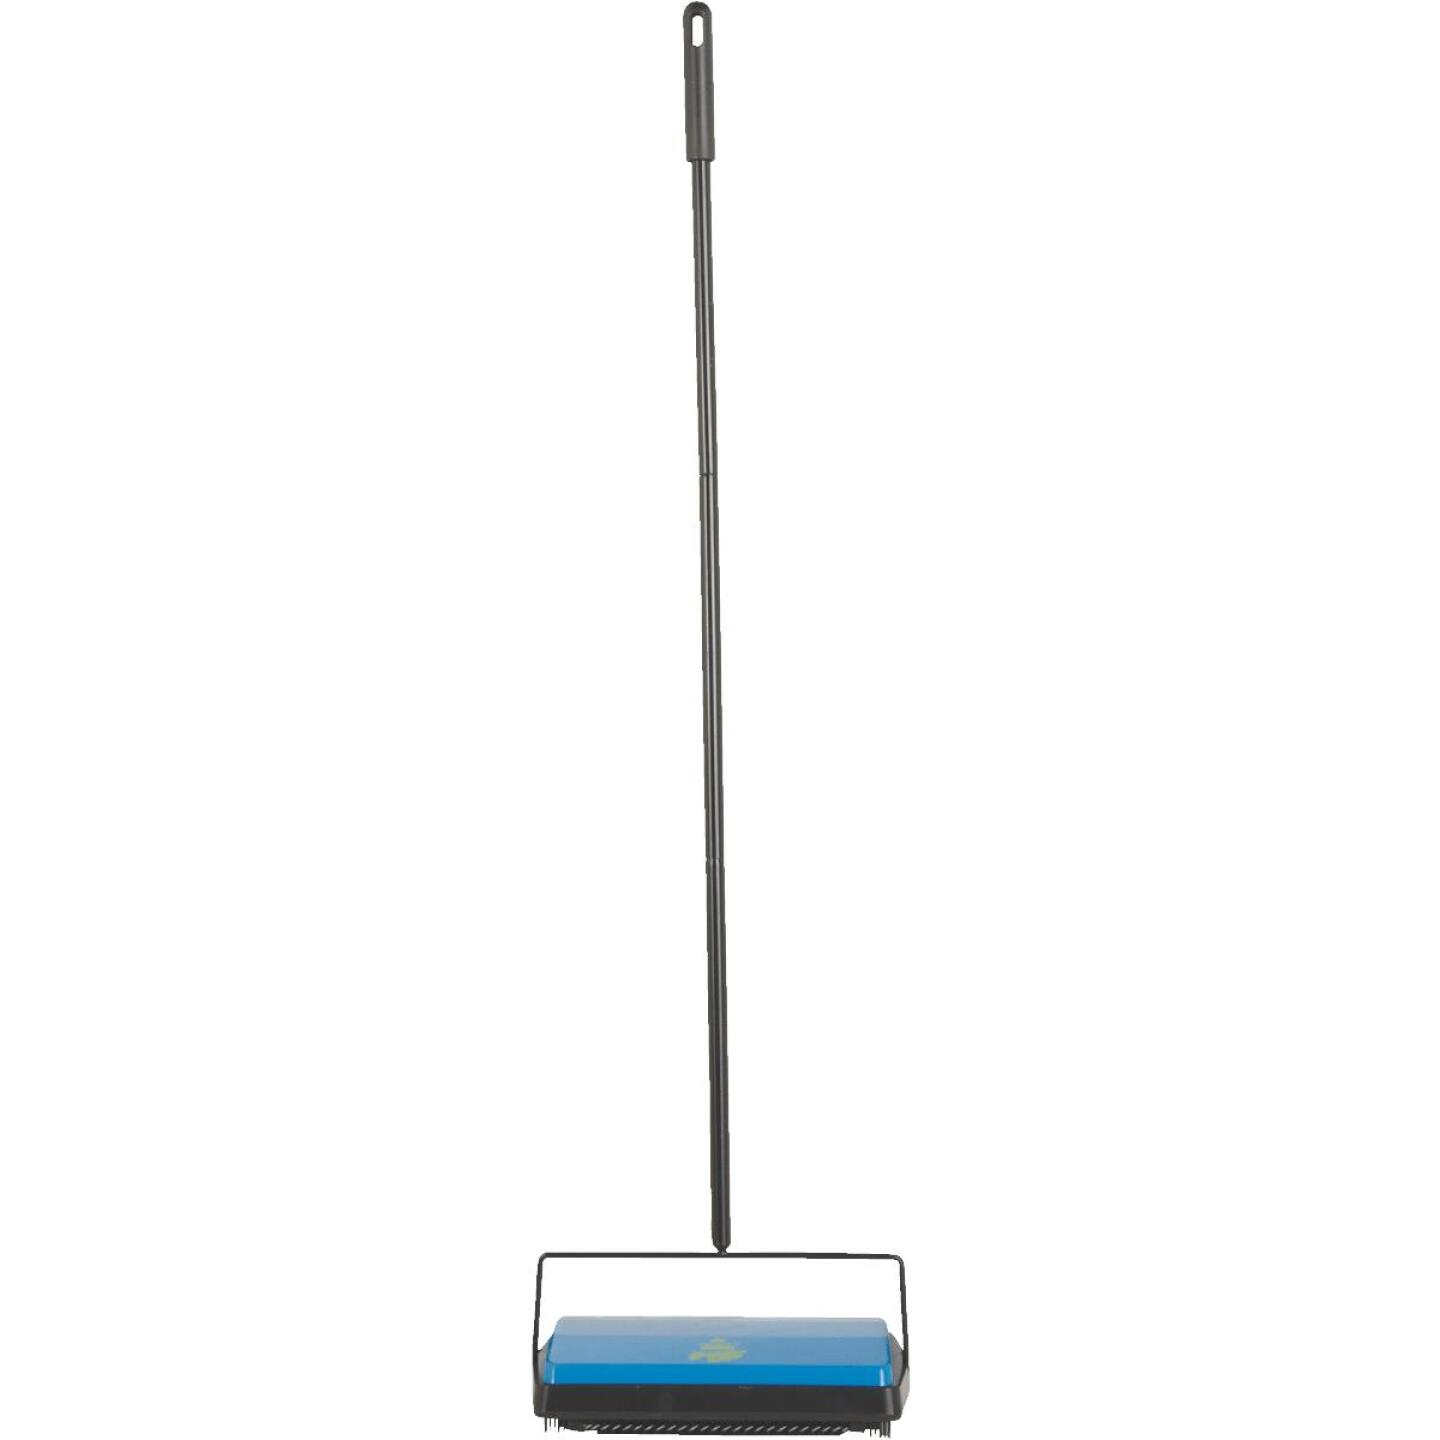 Bissell Sweep Up Cordless Carpet & Floor Sweeper Image 2